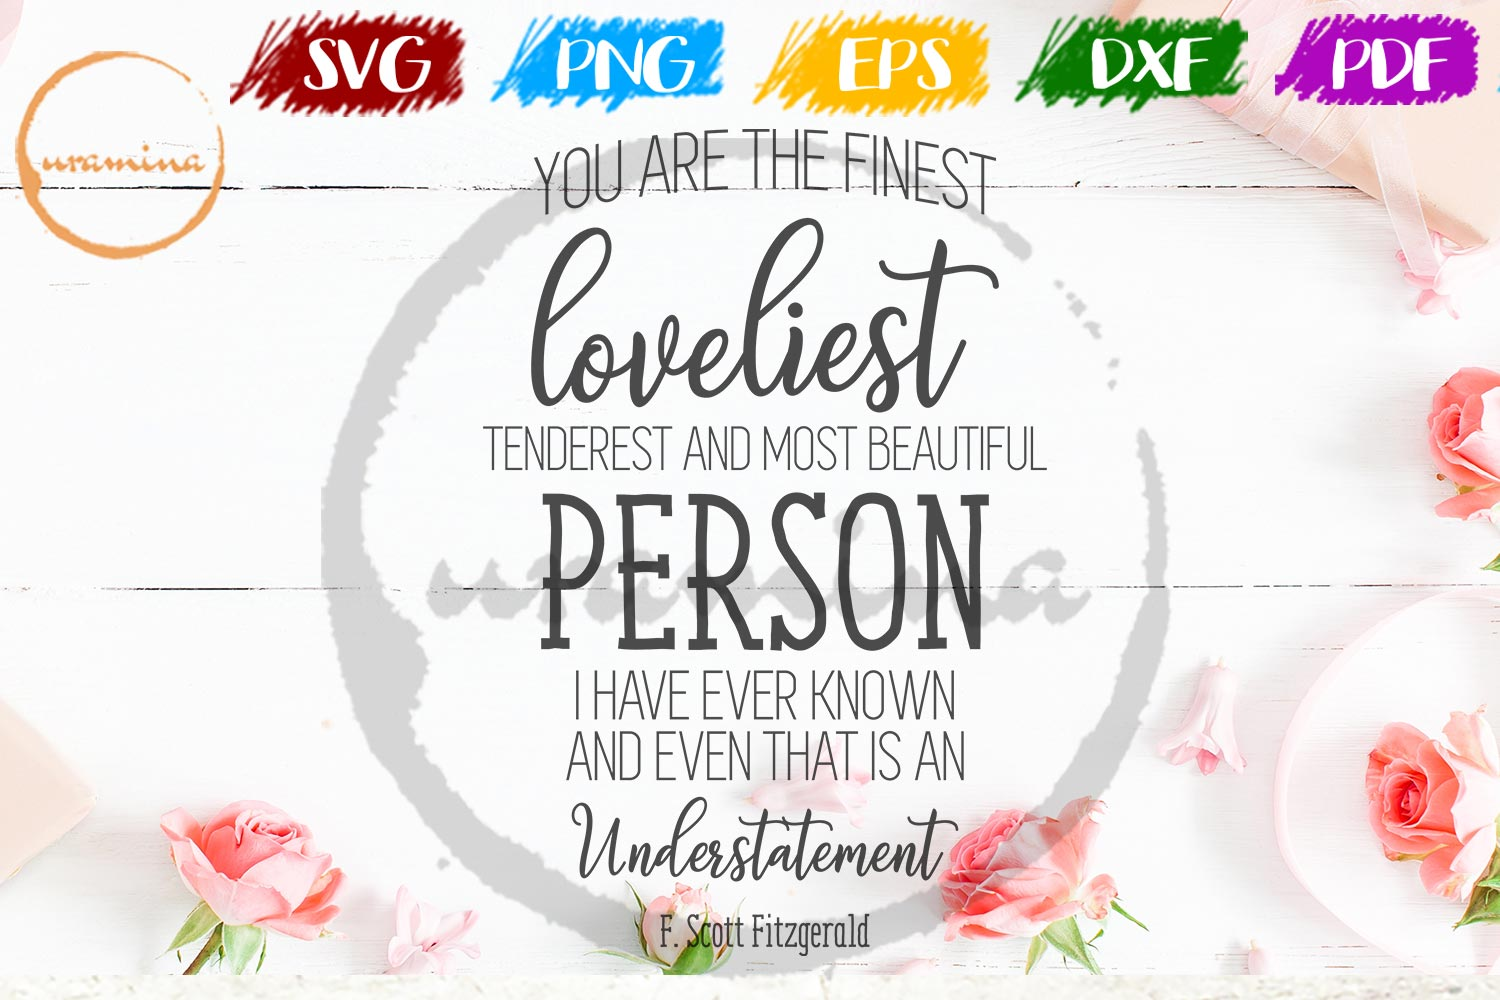 Download Free You Are The Finest Loveliest Tenderest Graphic By Uramina for Cricut Explore, Silhouette and other cutting machines.